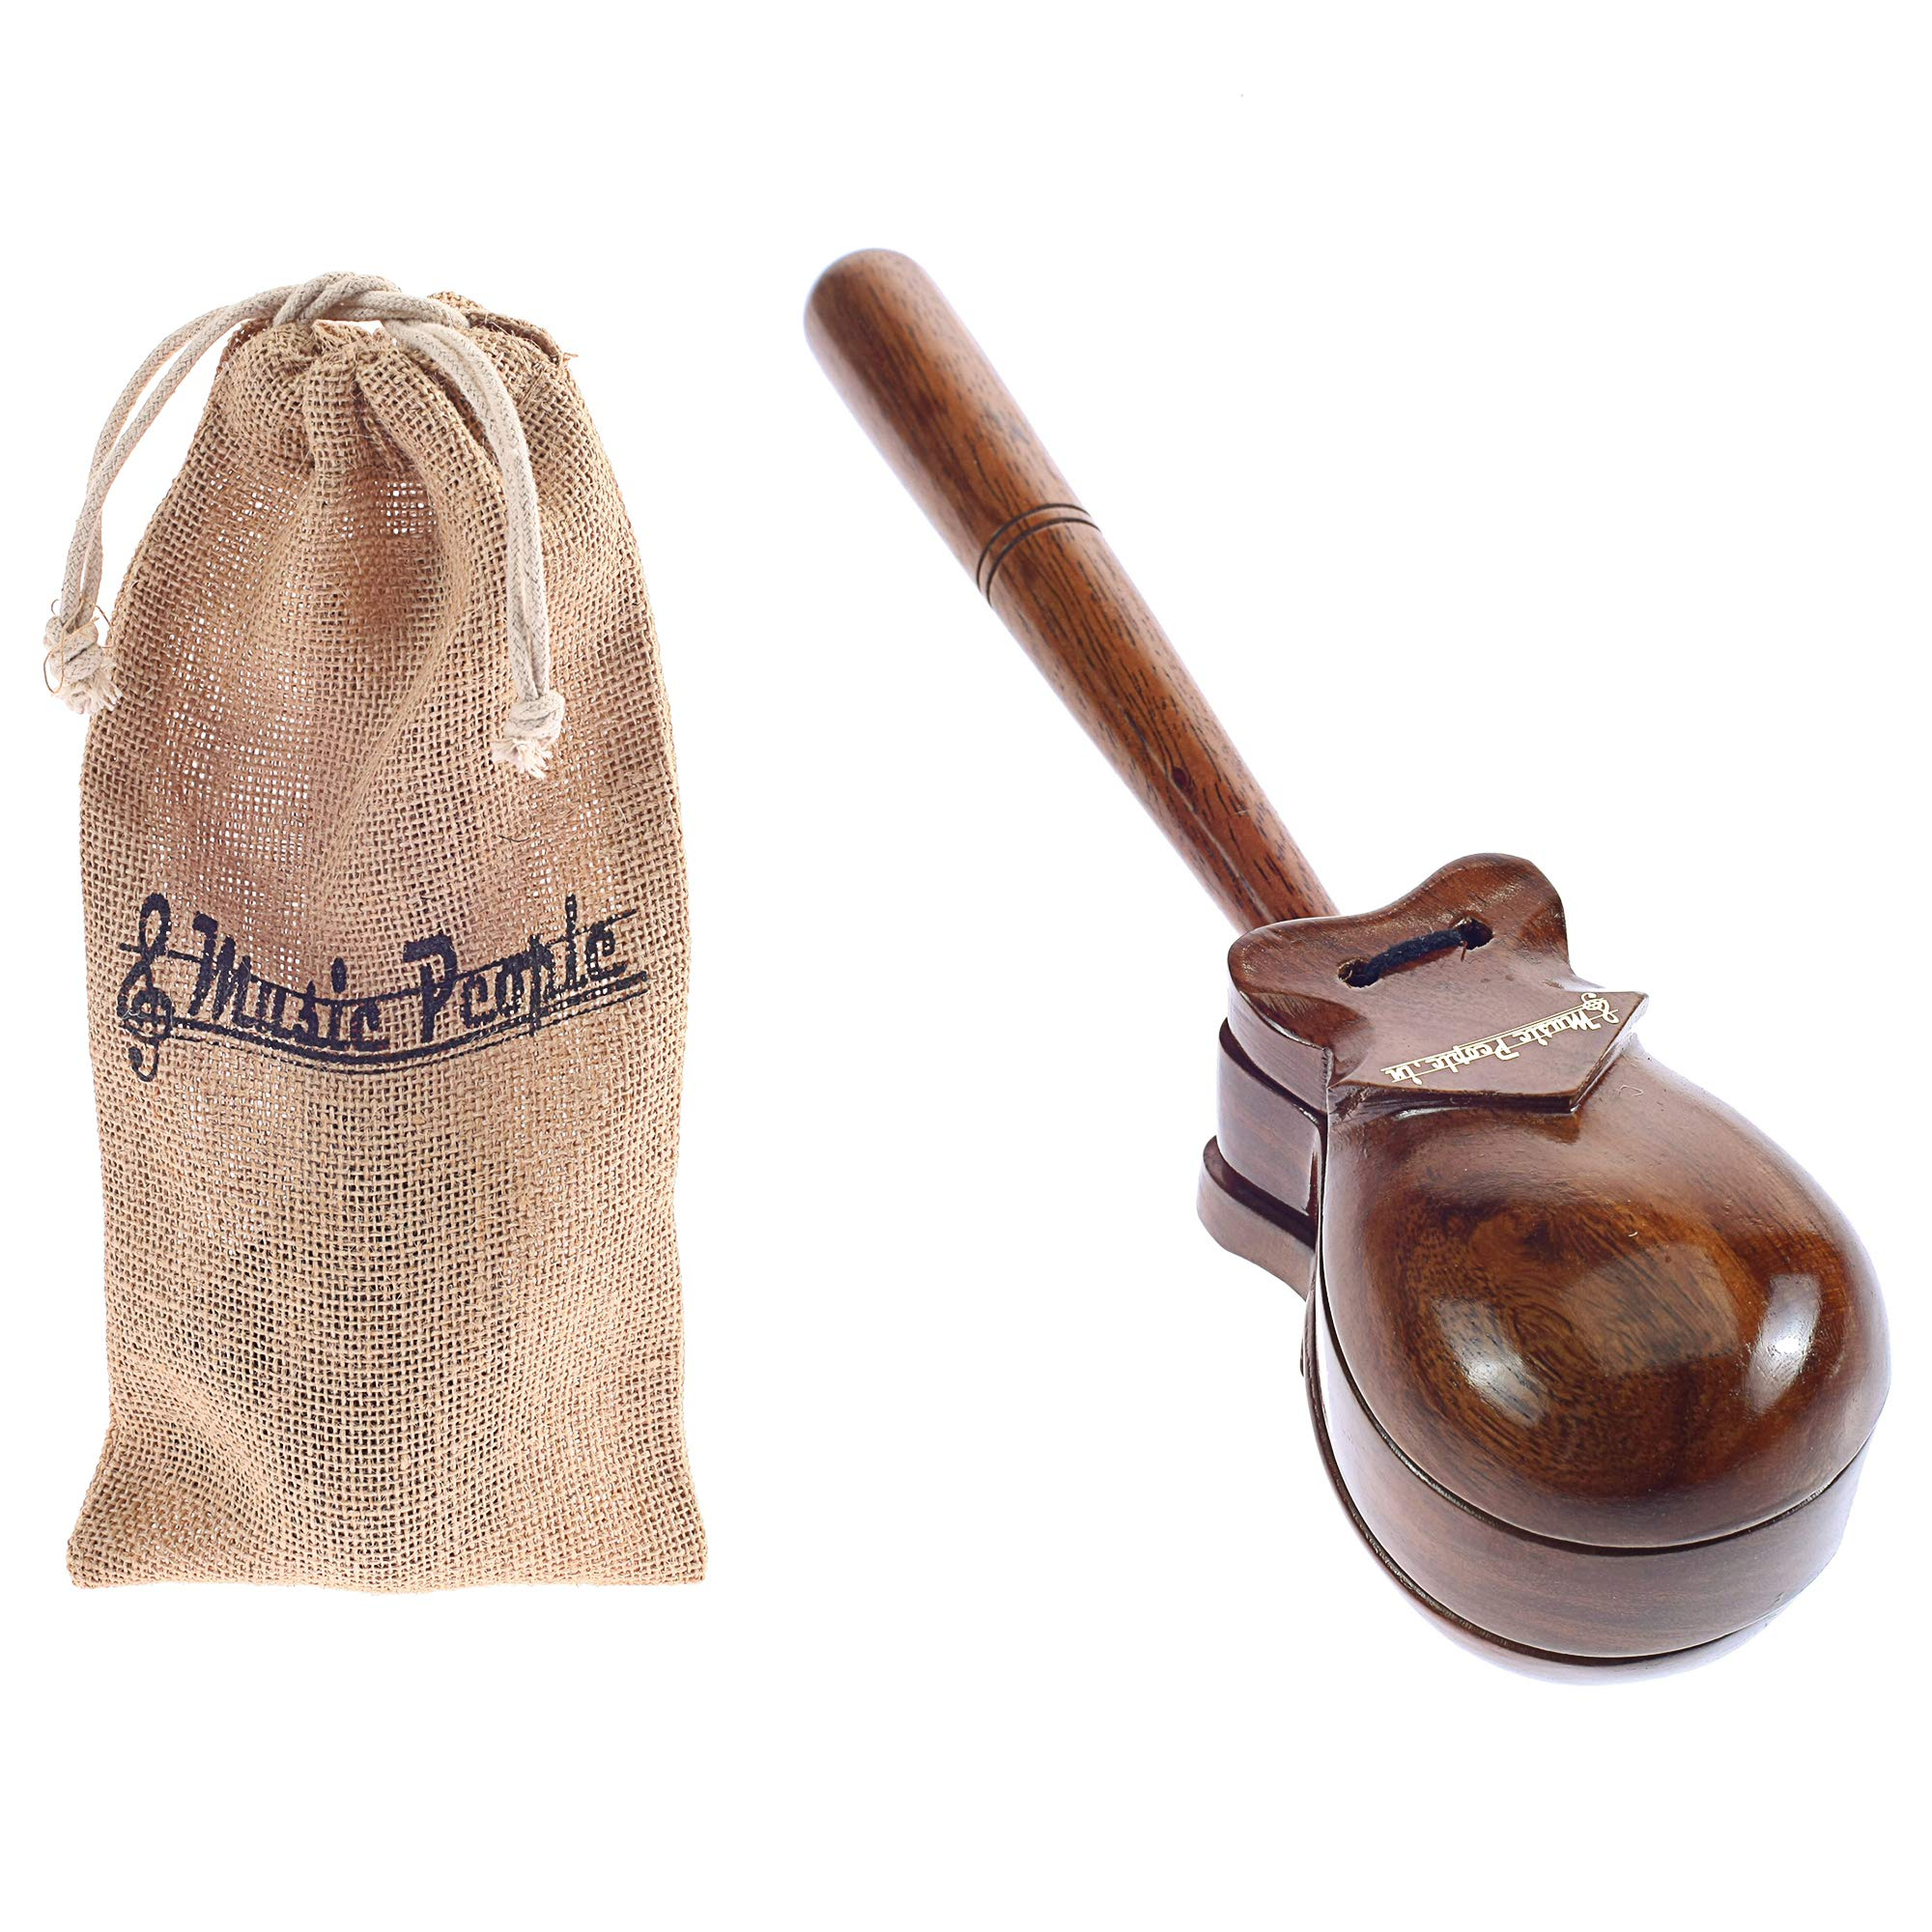 Music People Single Castanet With Handle (Wooden Gloss Laquer) with Canvas Carry Bag is an ideal Percussion Instrument for Stage/Solo Performances & Music Education by Music School by MusicPeople